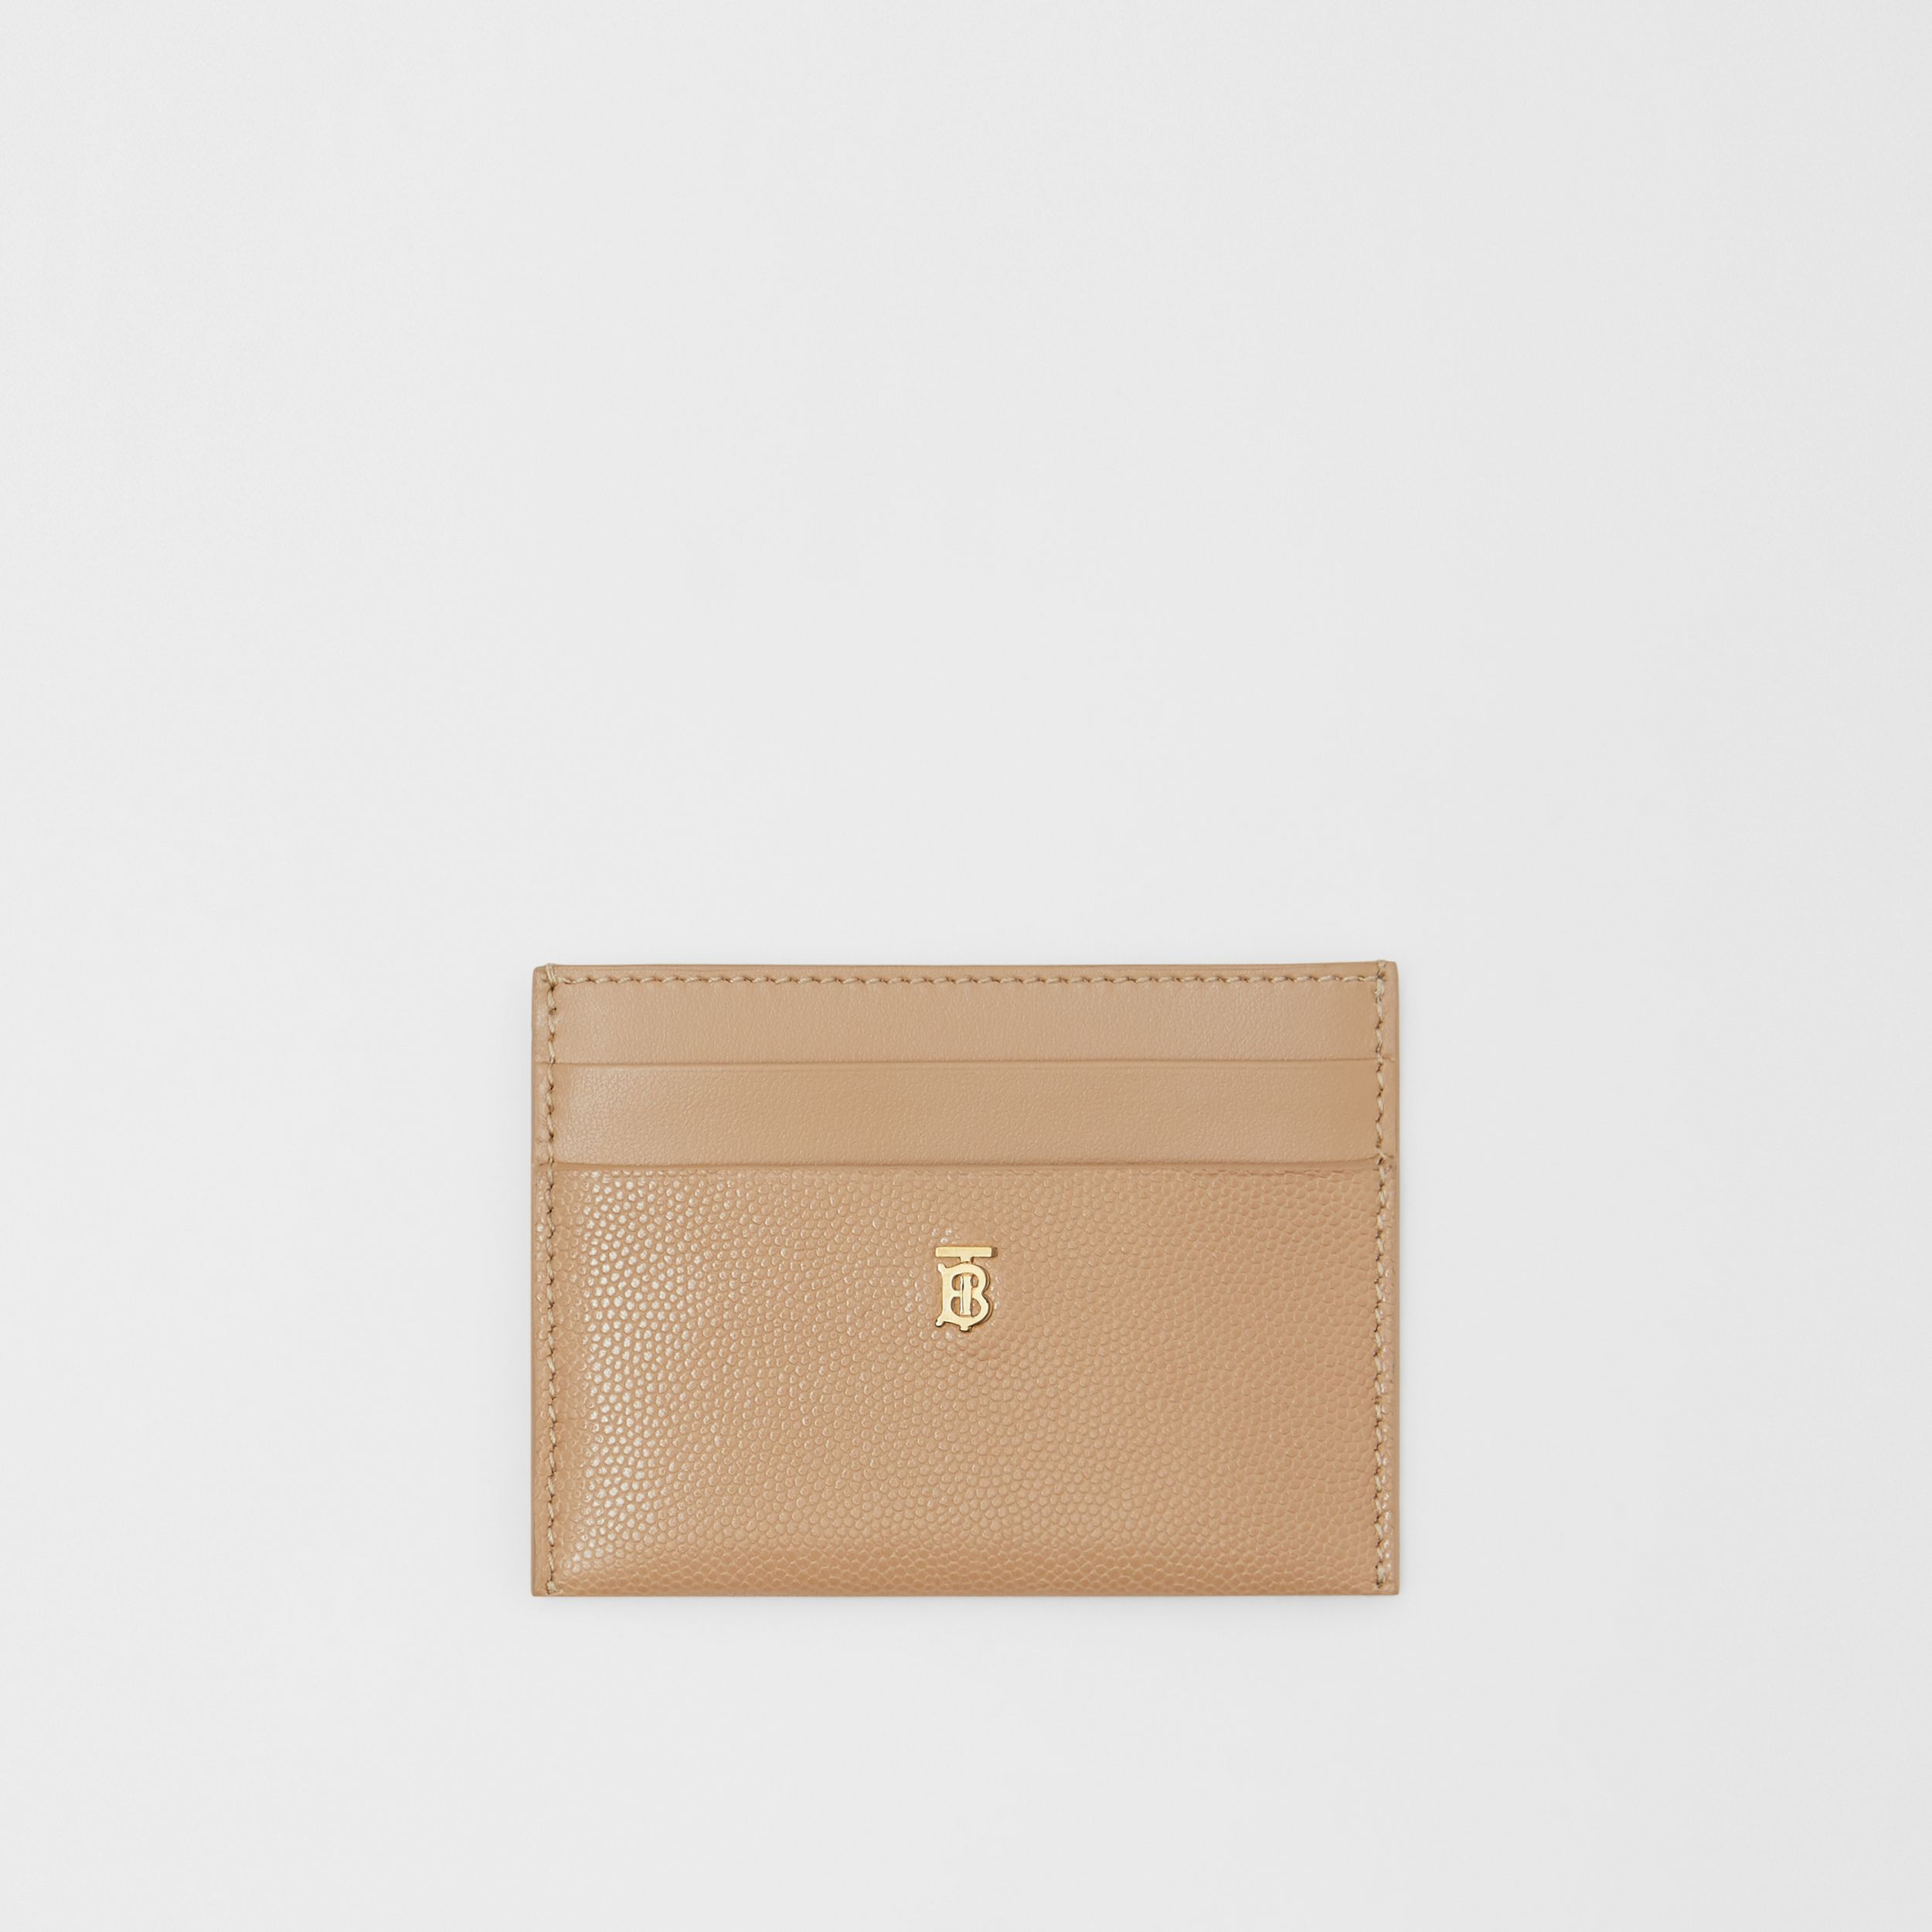 Monogram Motif Leather Card Case in Archive Beige - Women | Burberry Australia - 1